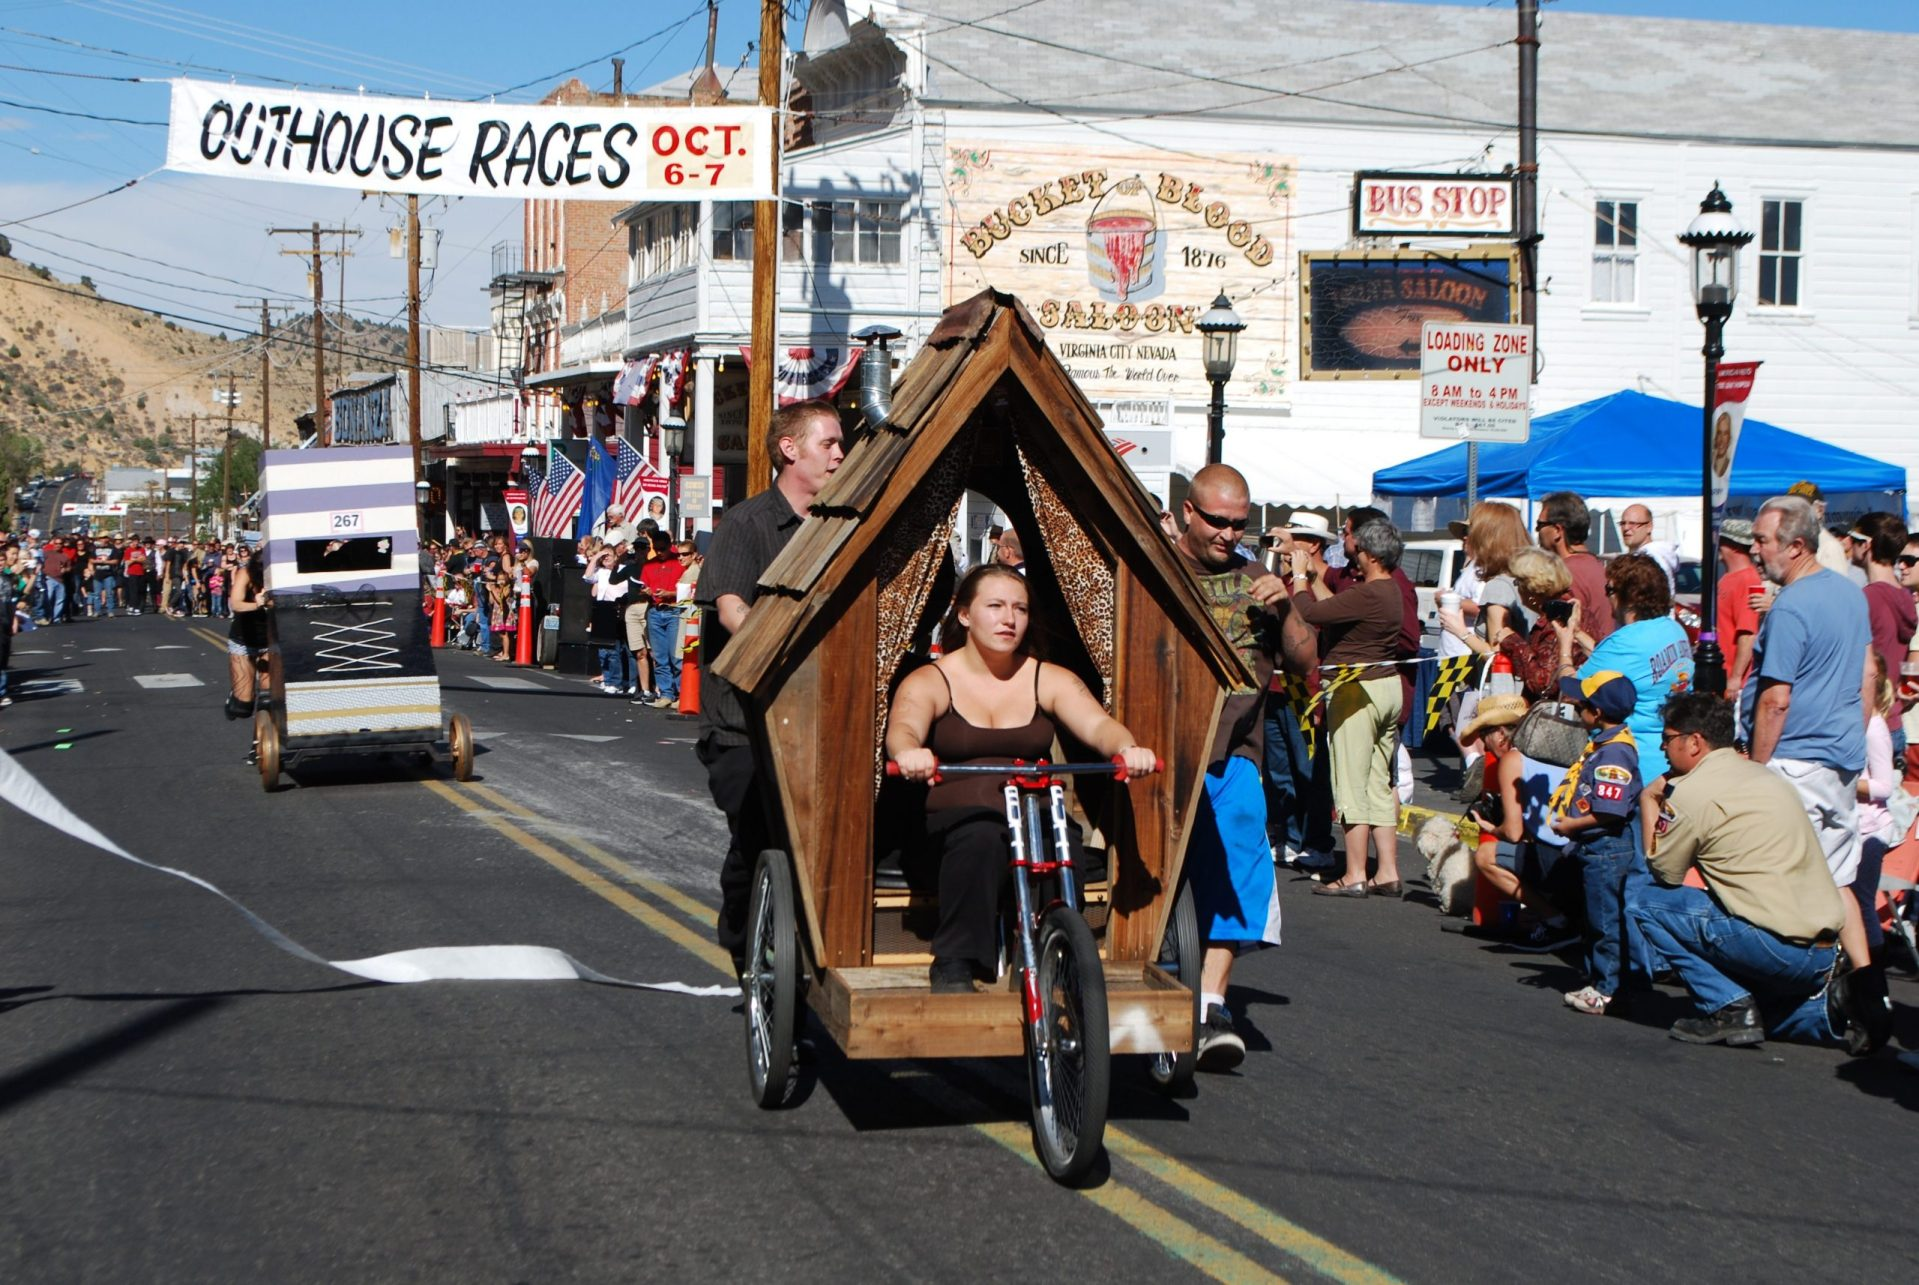 Virginia City Outhouse Races